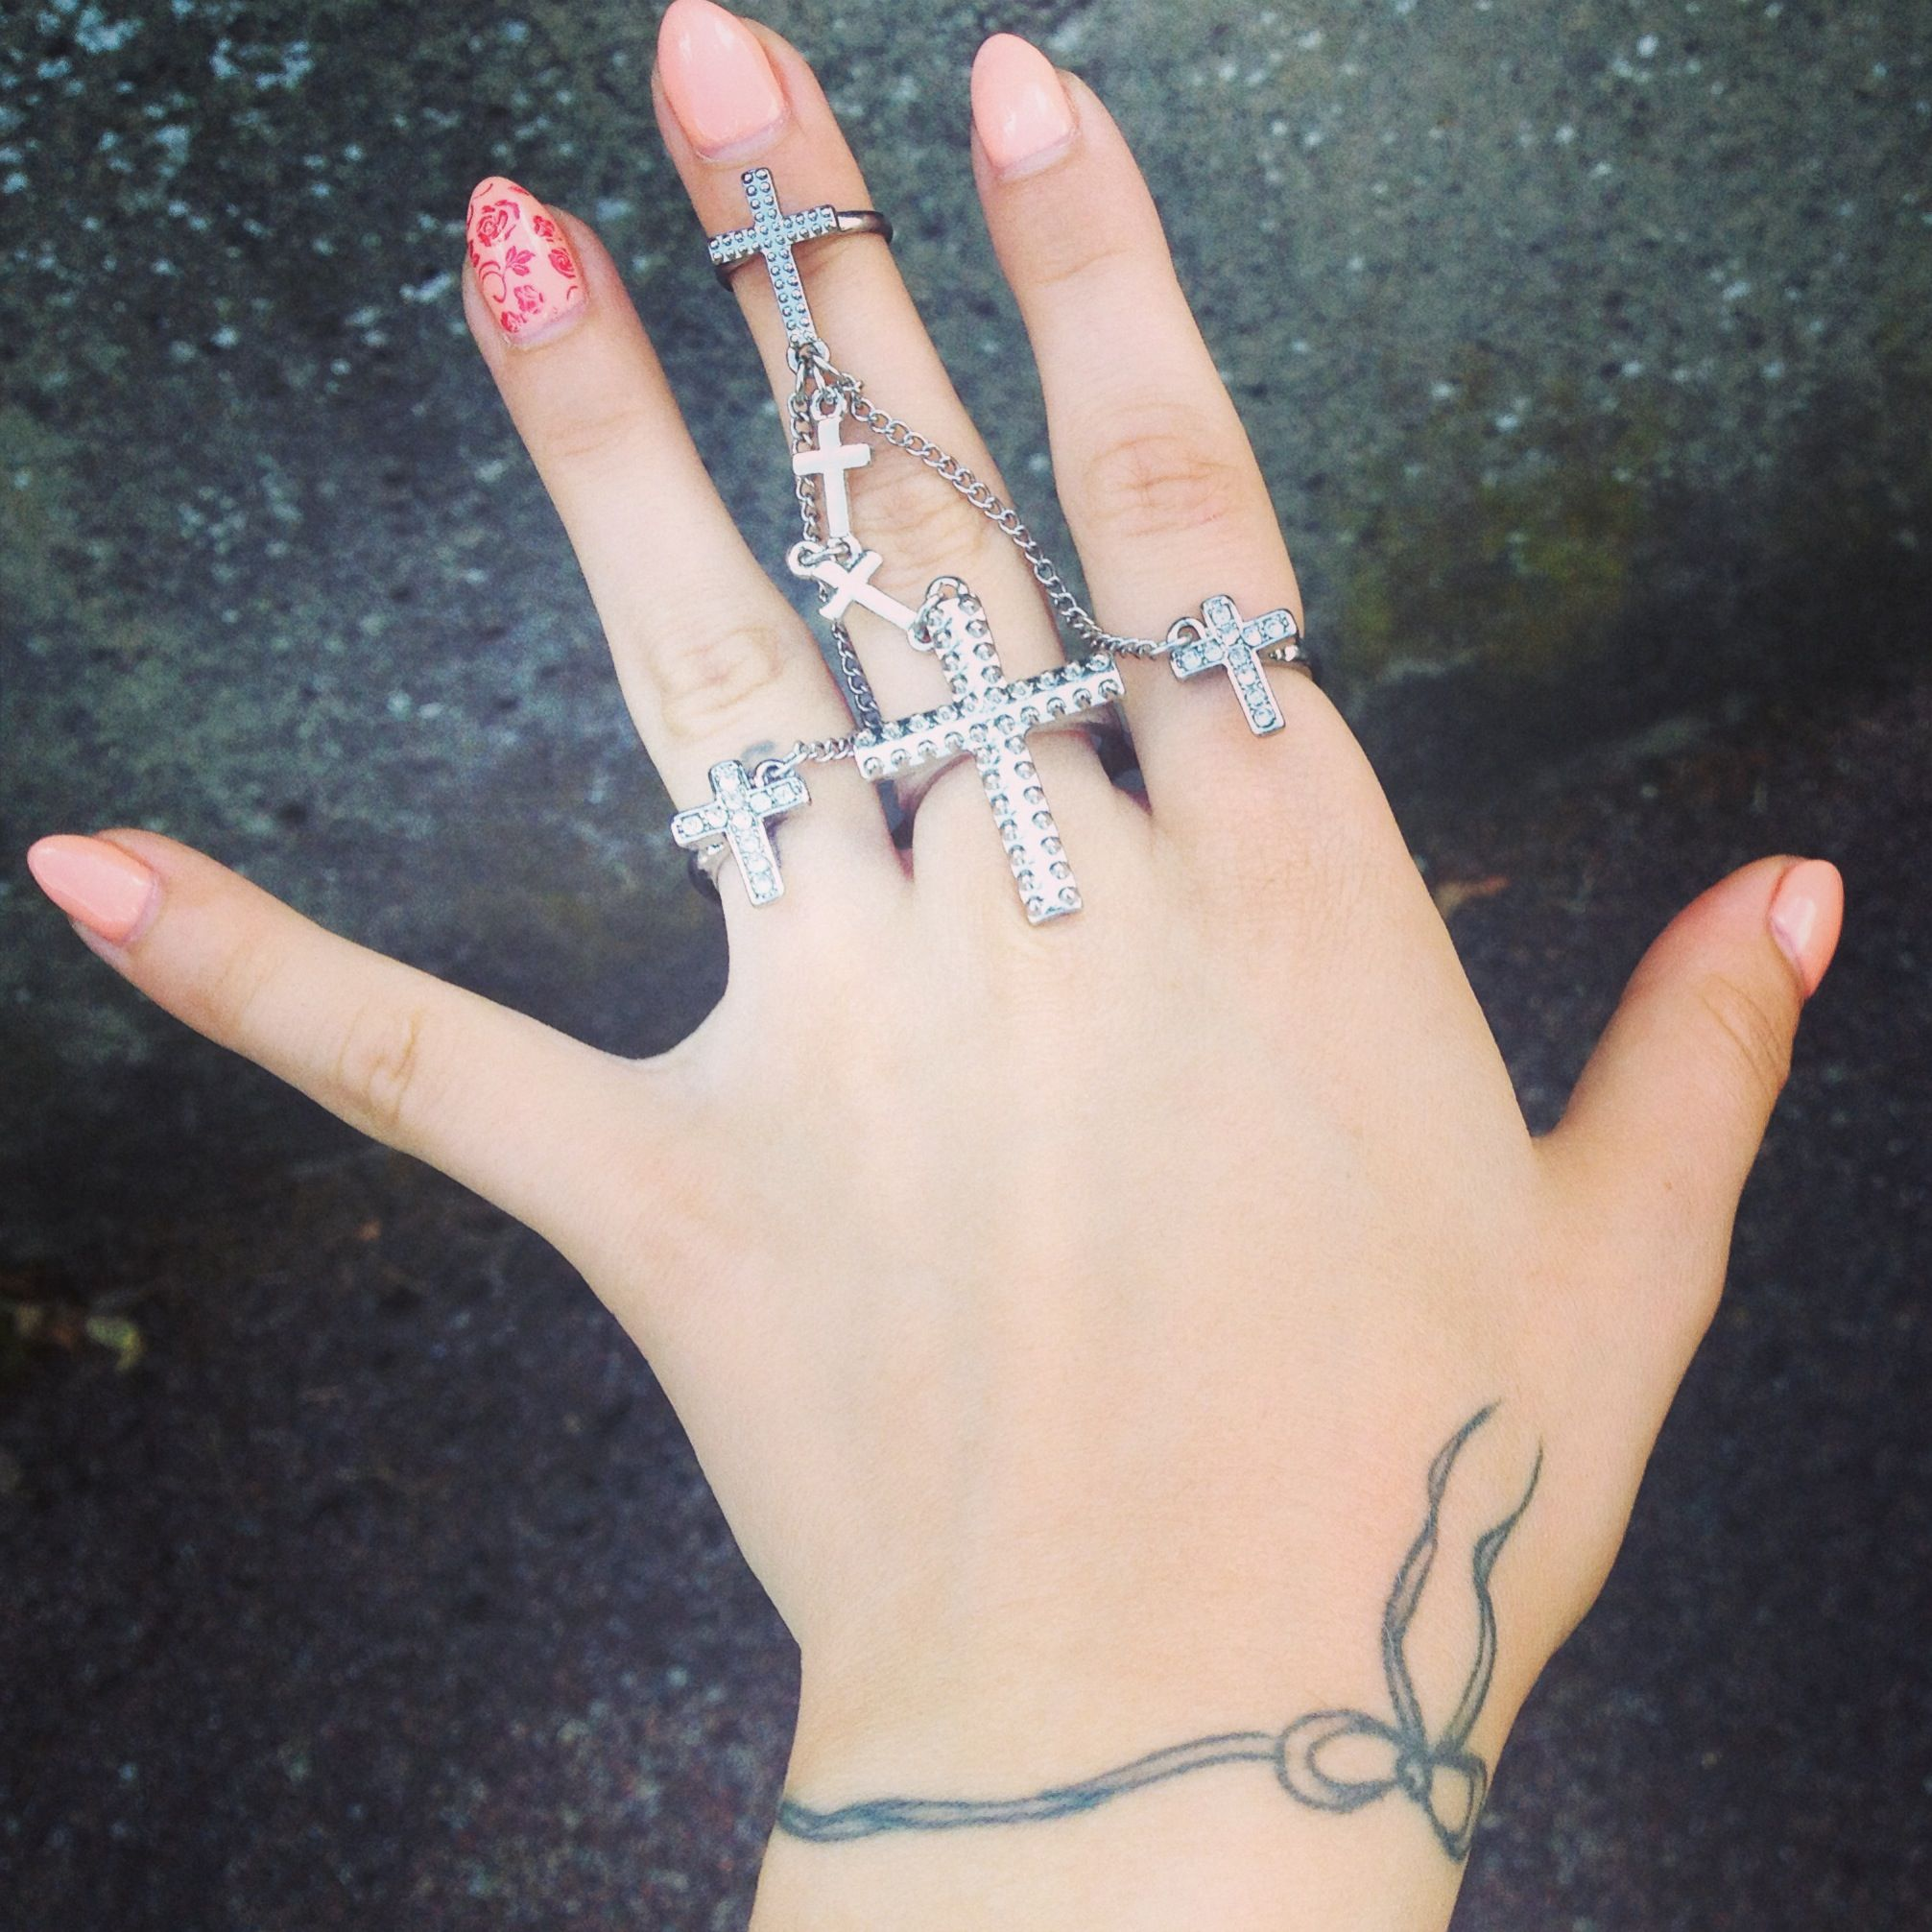 Two Nails Crossed Tattoo Meaning: #ring #cross #nails #bow #tattoo